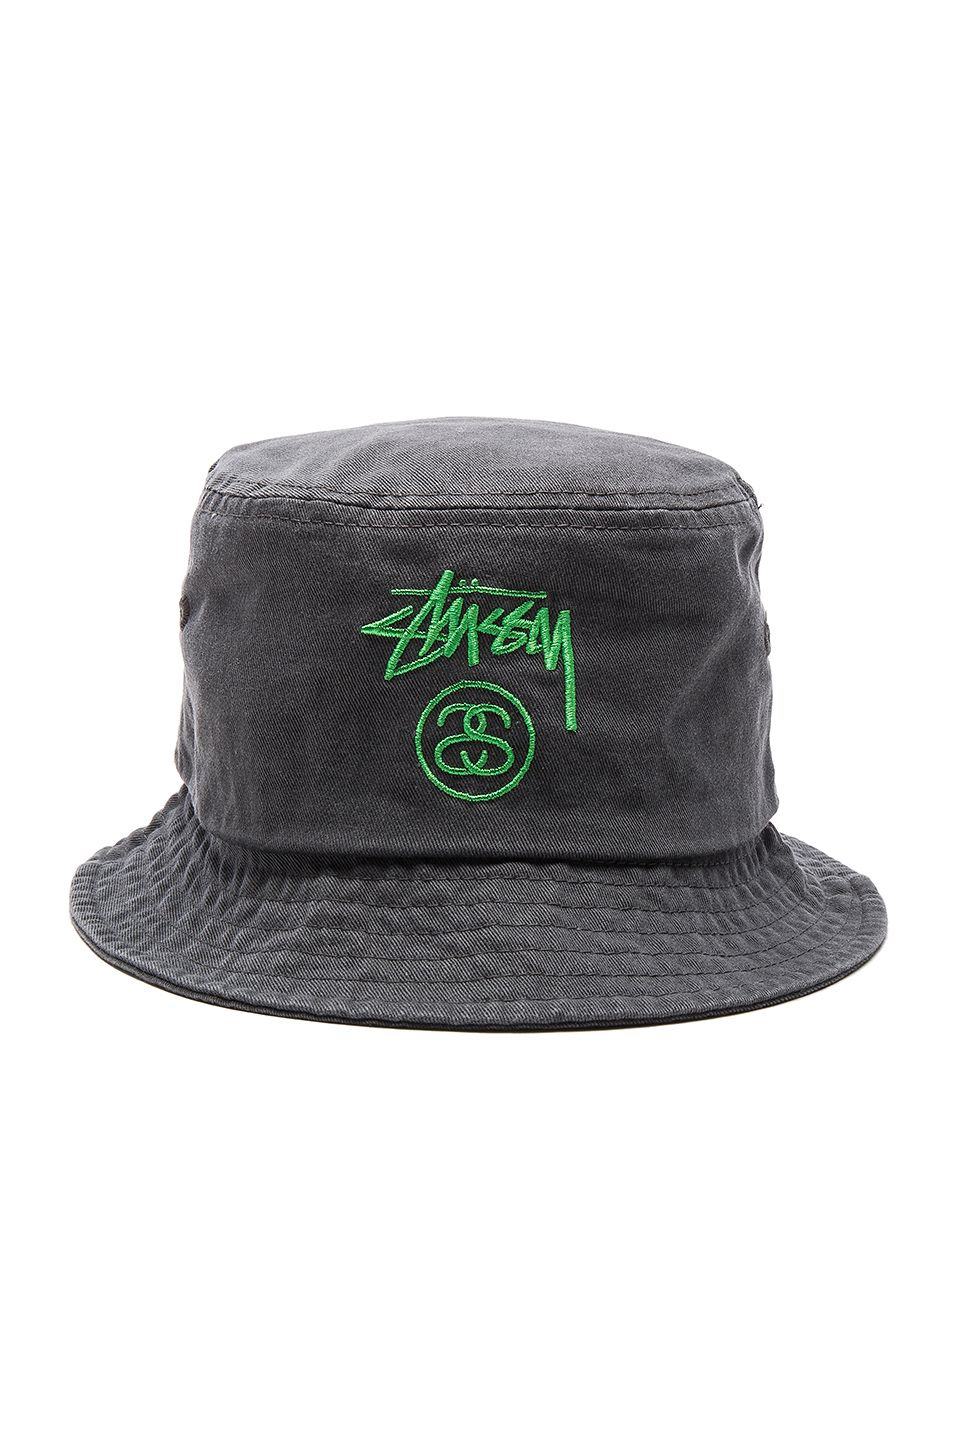 a2bbc4527b5 Stussy Stock Lock Pigment Dye Bucket Hat in Black